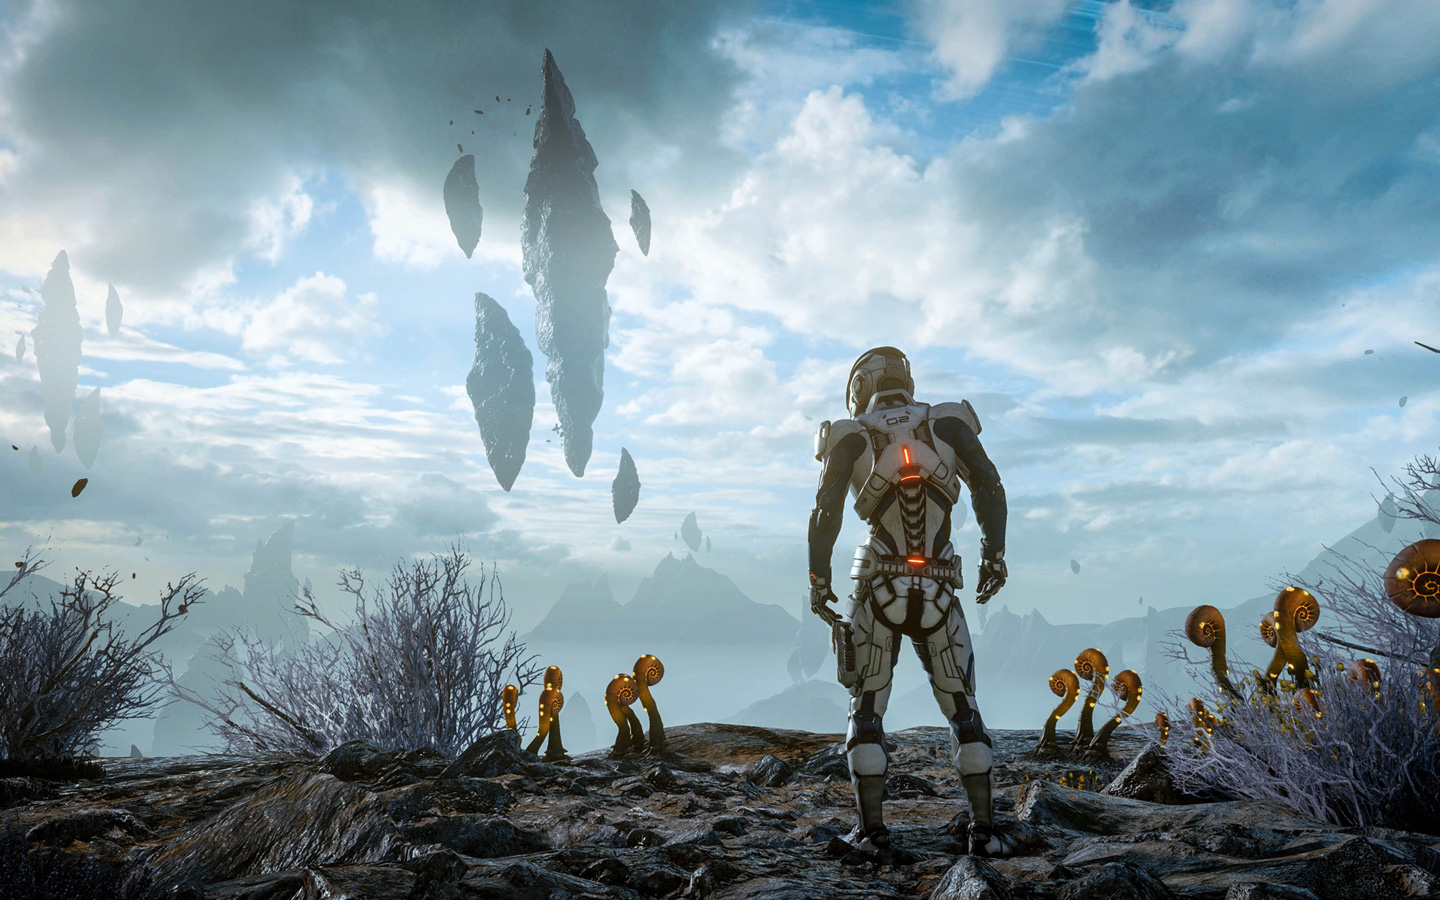 Free Mass Effect: Andromeda Wallpaper in 1440x900